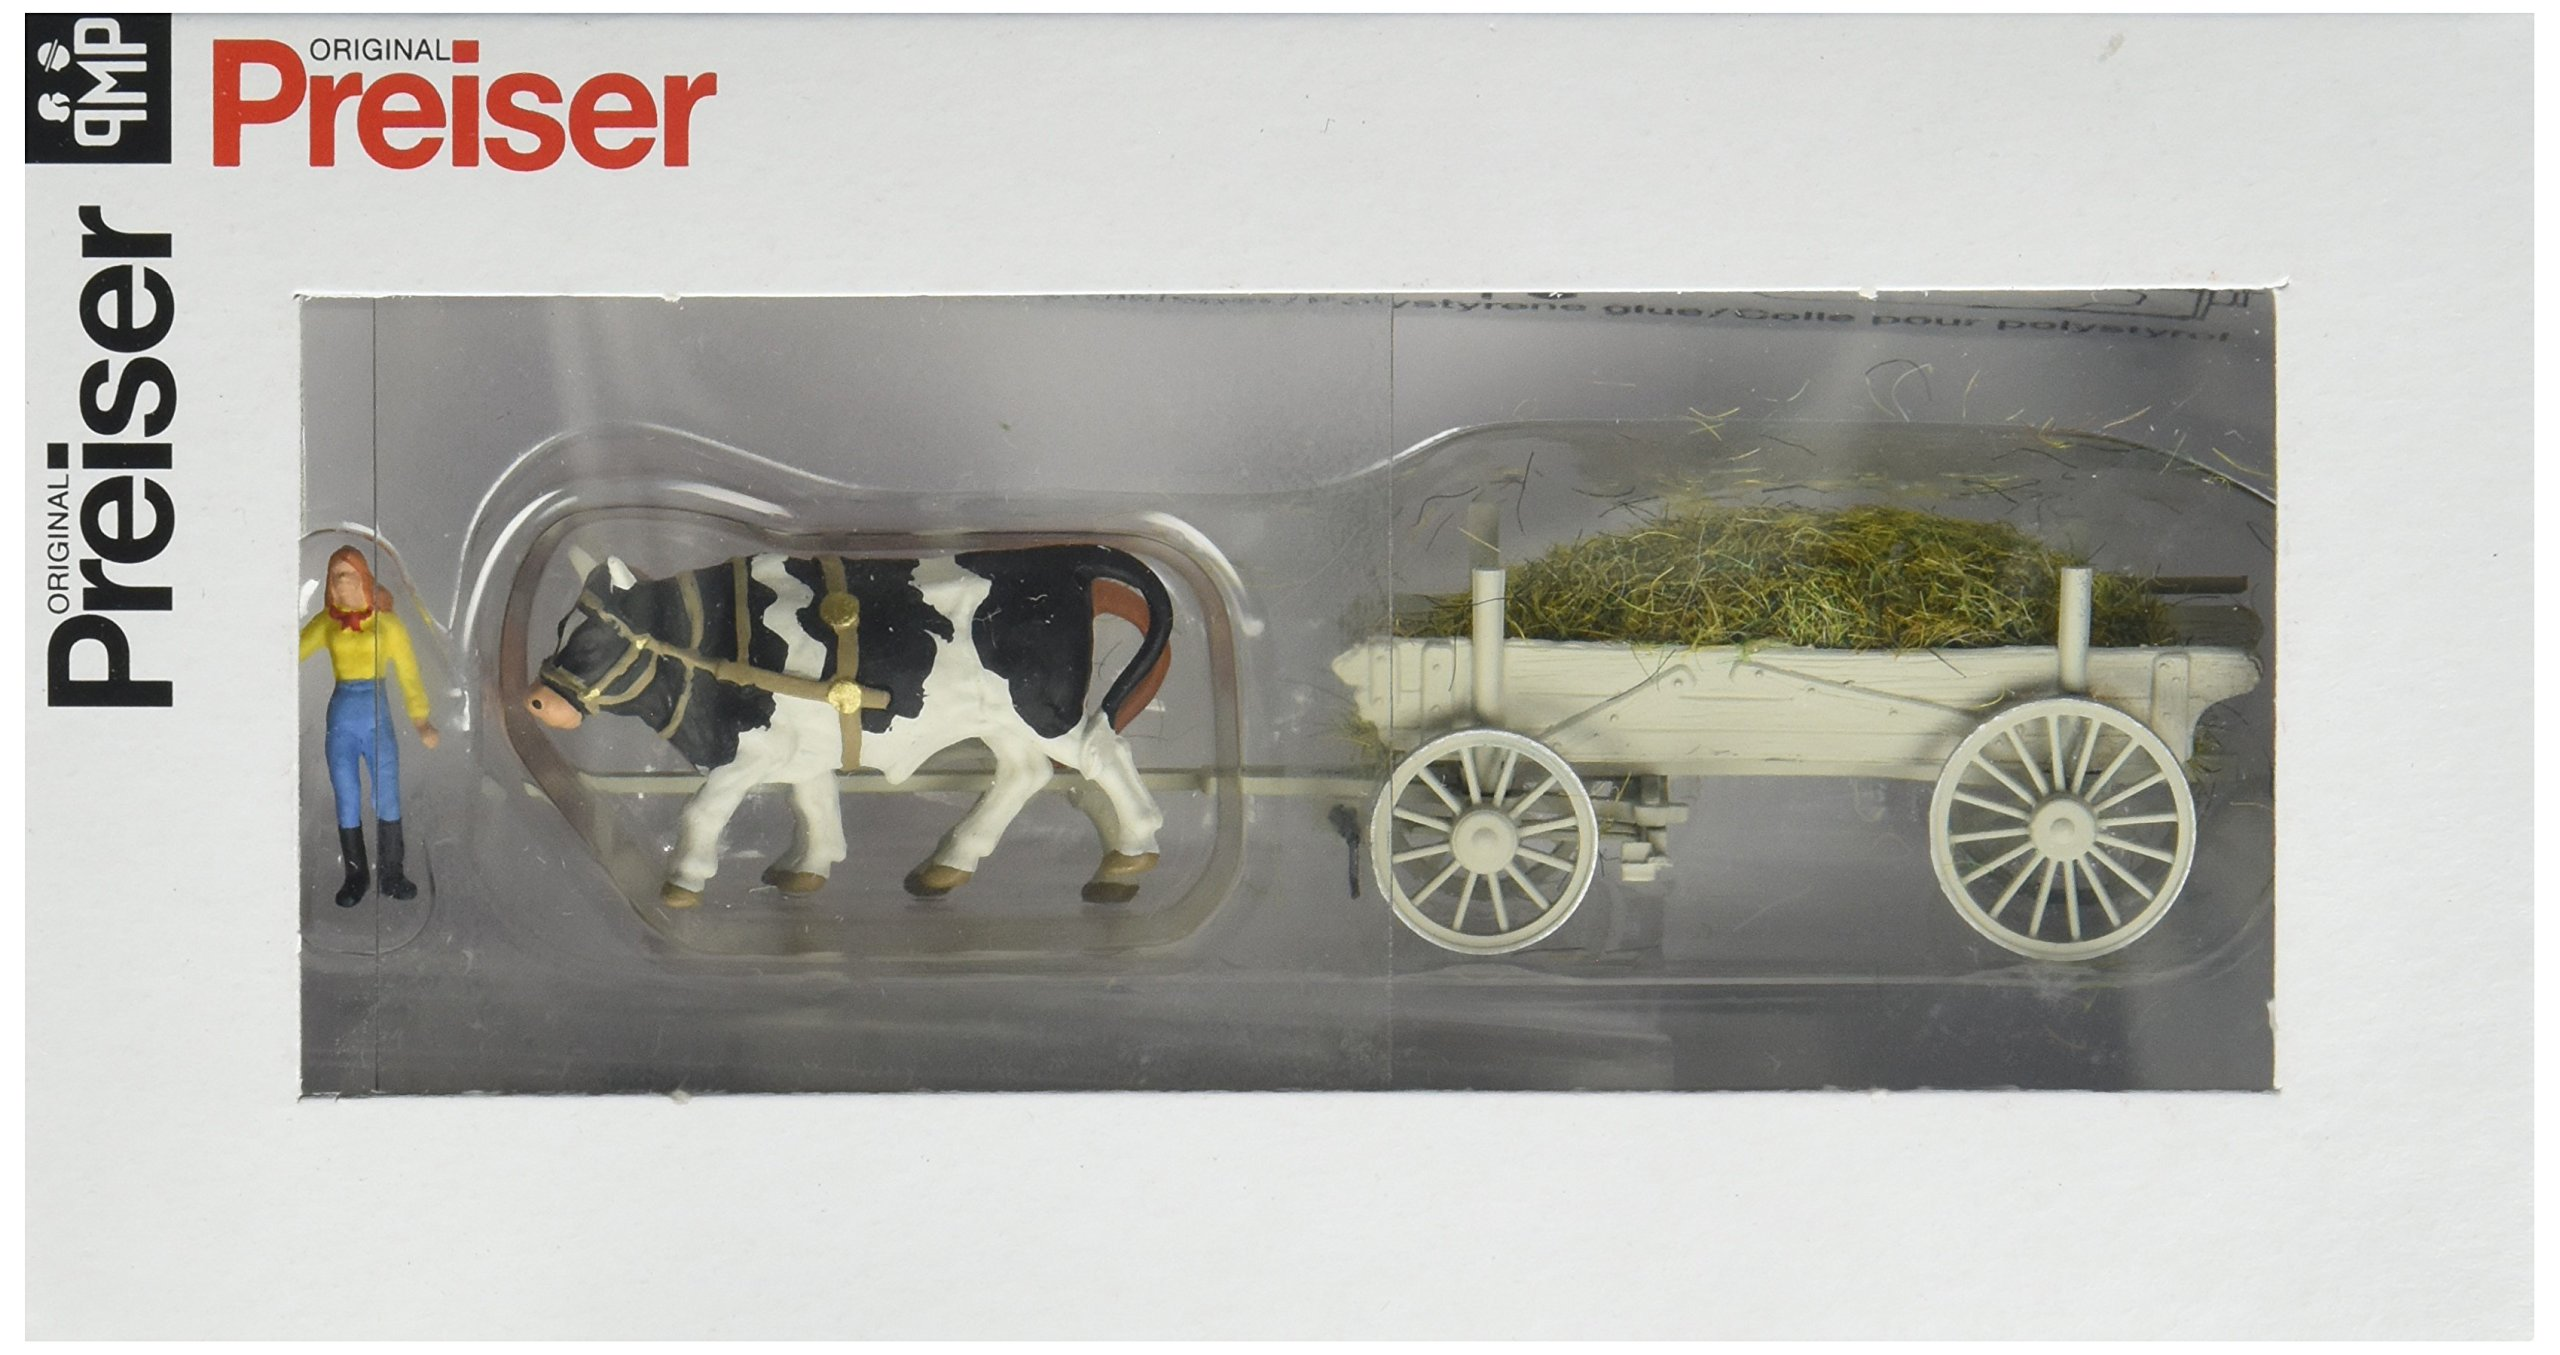 Preiser 30474 Horse Drawn Wagon Manure Wagon w/Driver, Load & Ox HO Scale Vehicles Model Figure